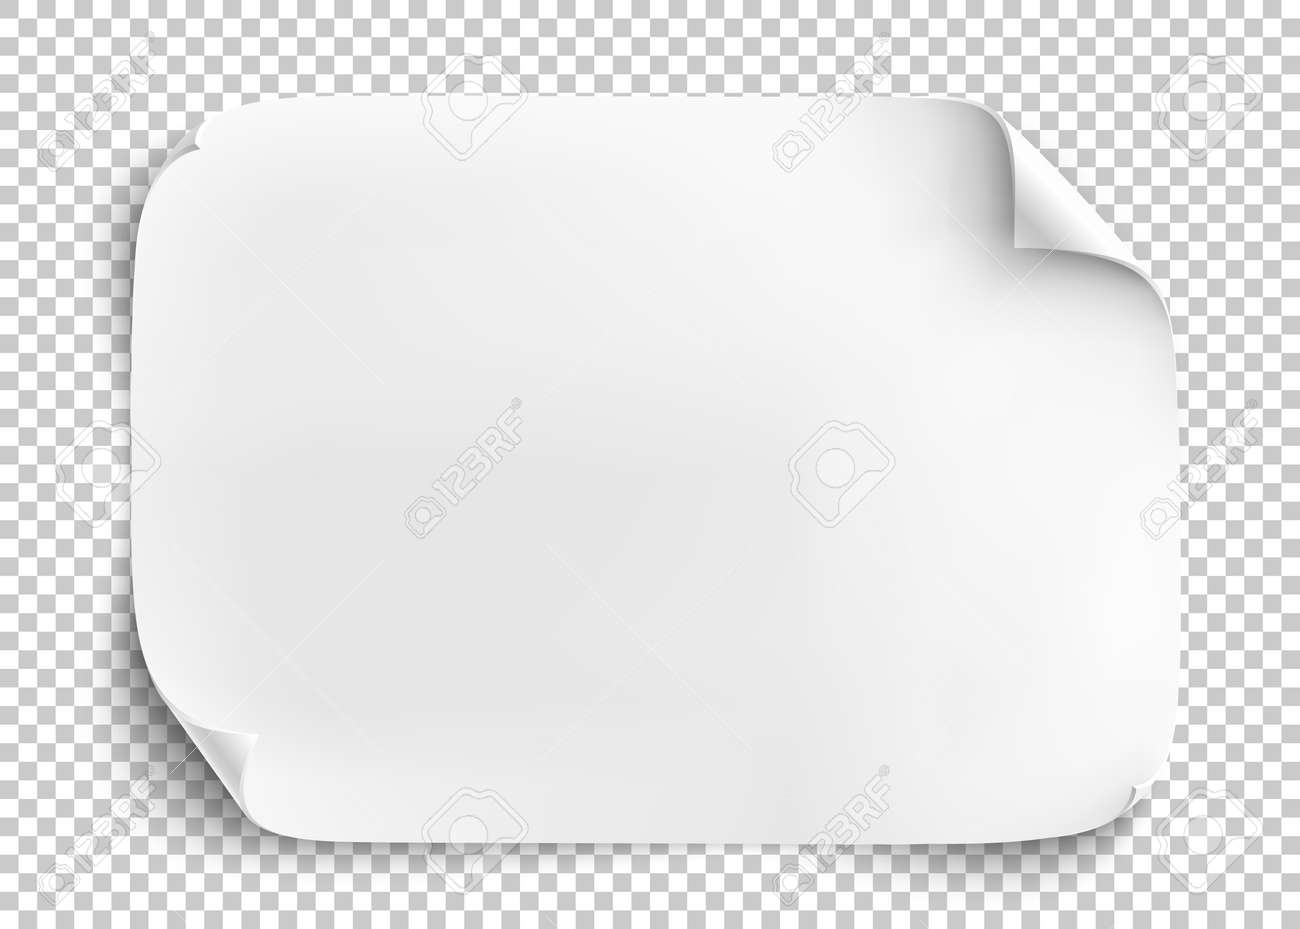 White sheet of paper on transparent background. - 59302556